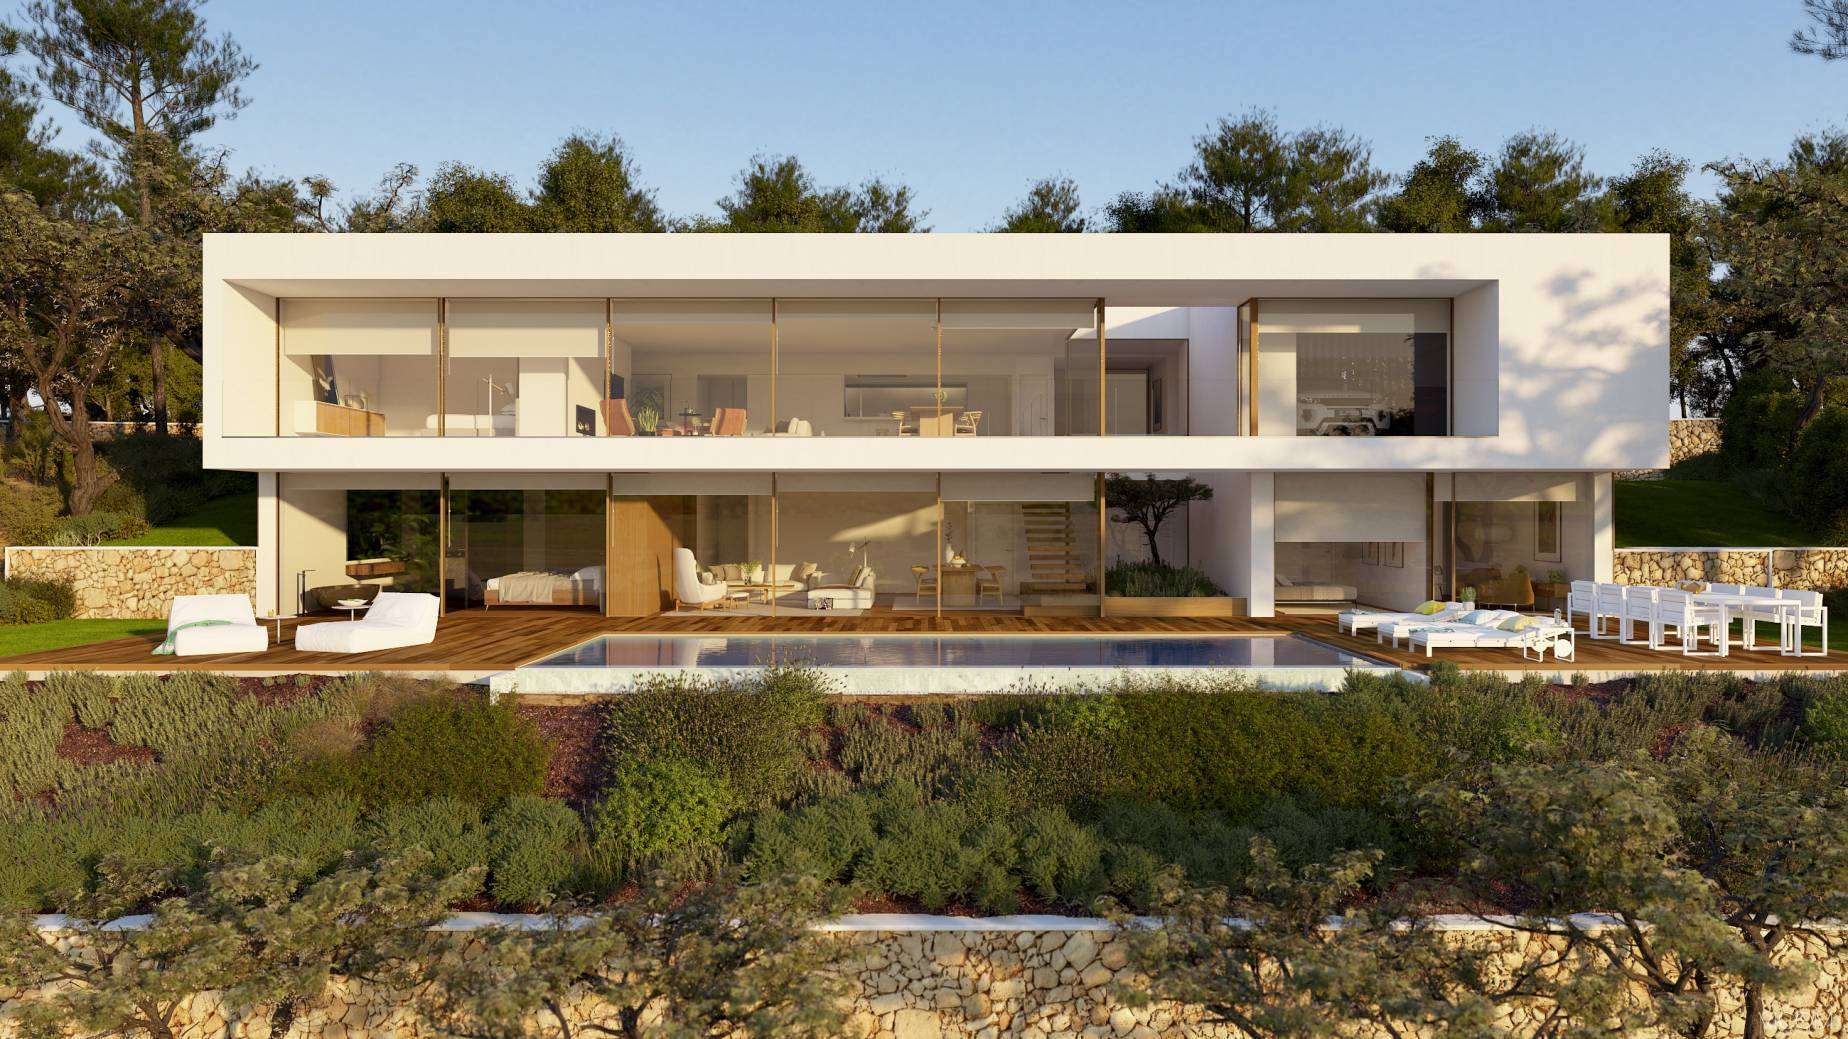 Single Family Home for Sale at Proposed modern villa with spectacular sea views in Cala Sant Francesc Other Spain, Other Areas In Spain, 17300 Spain